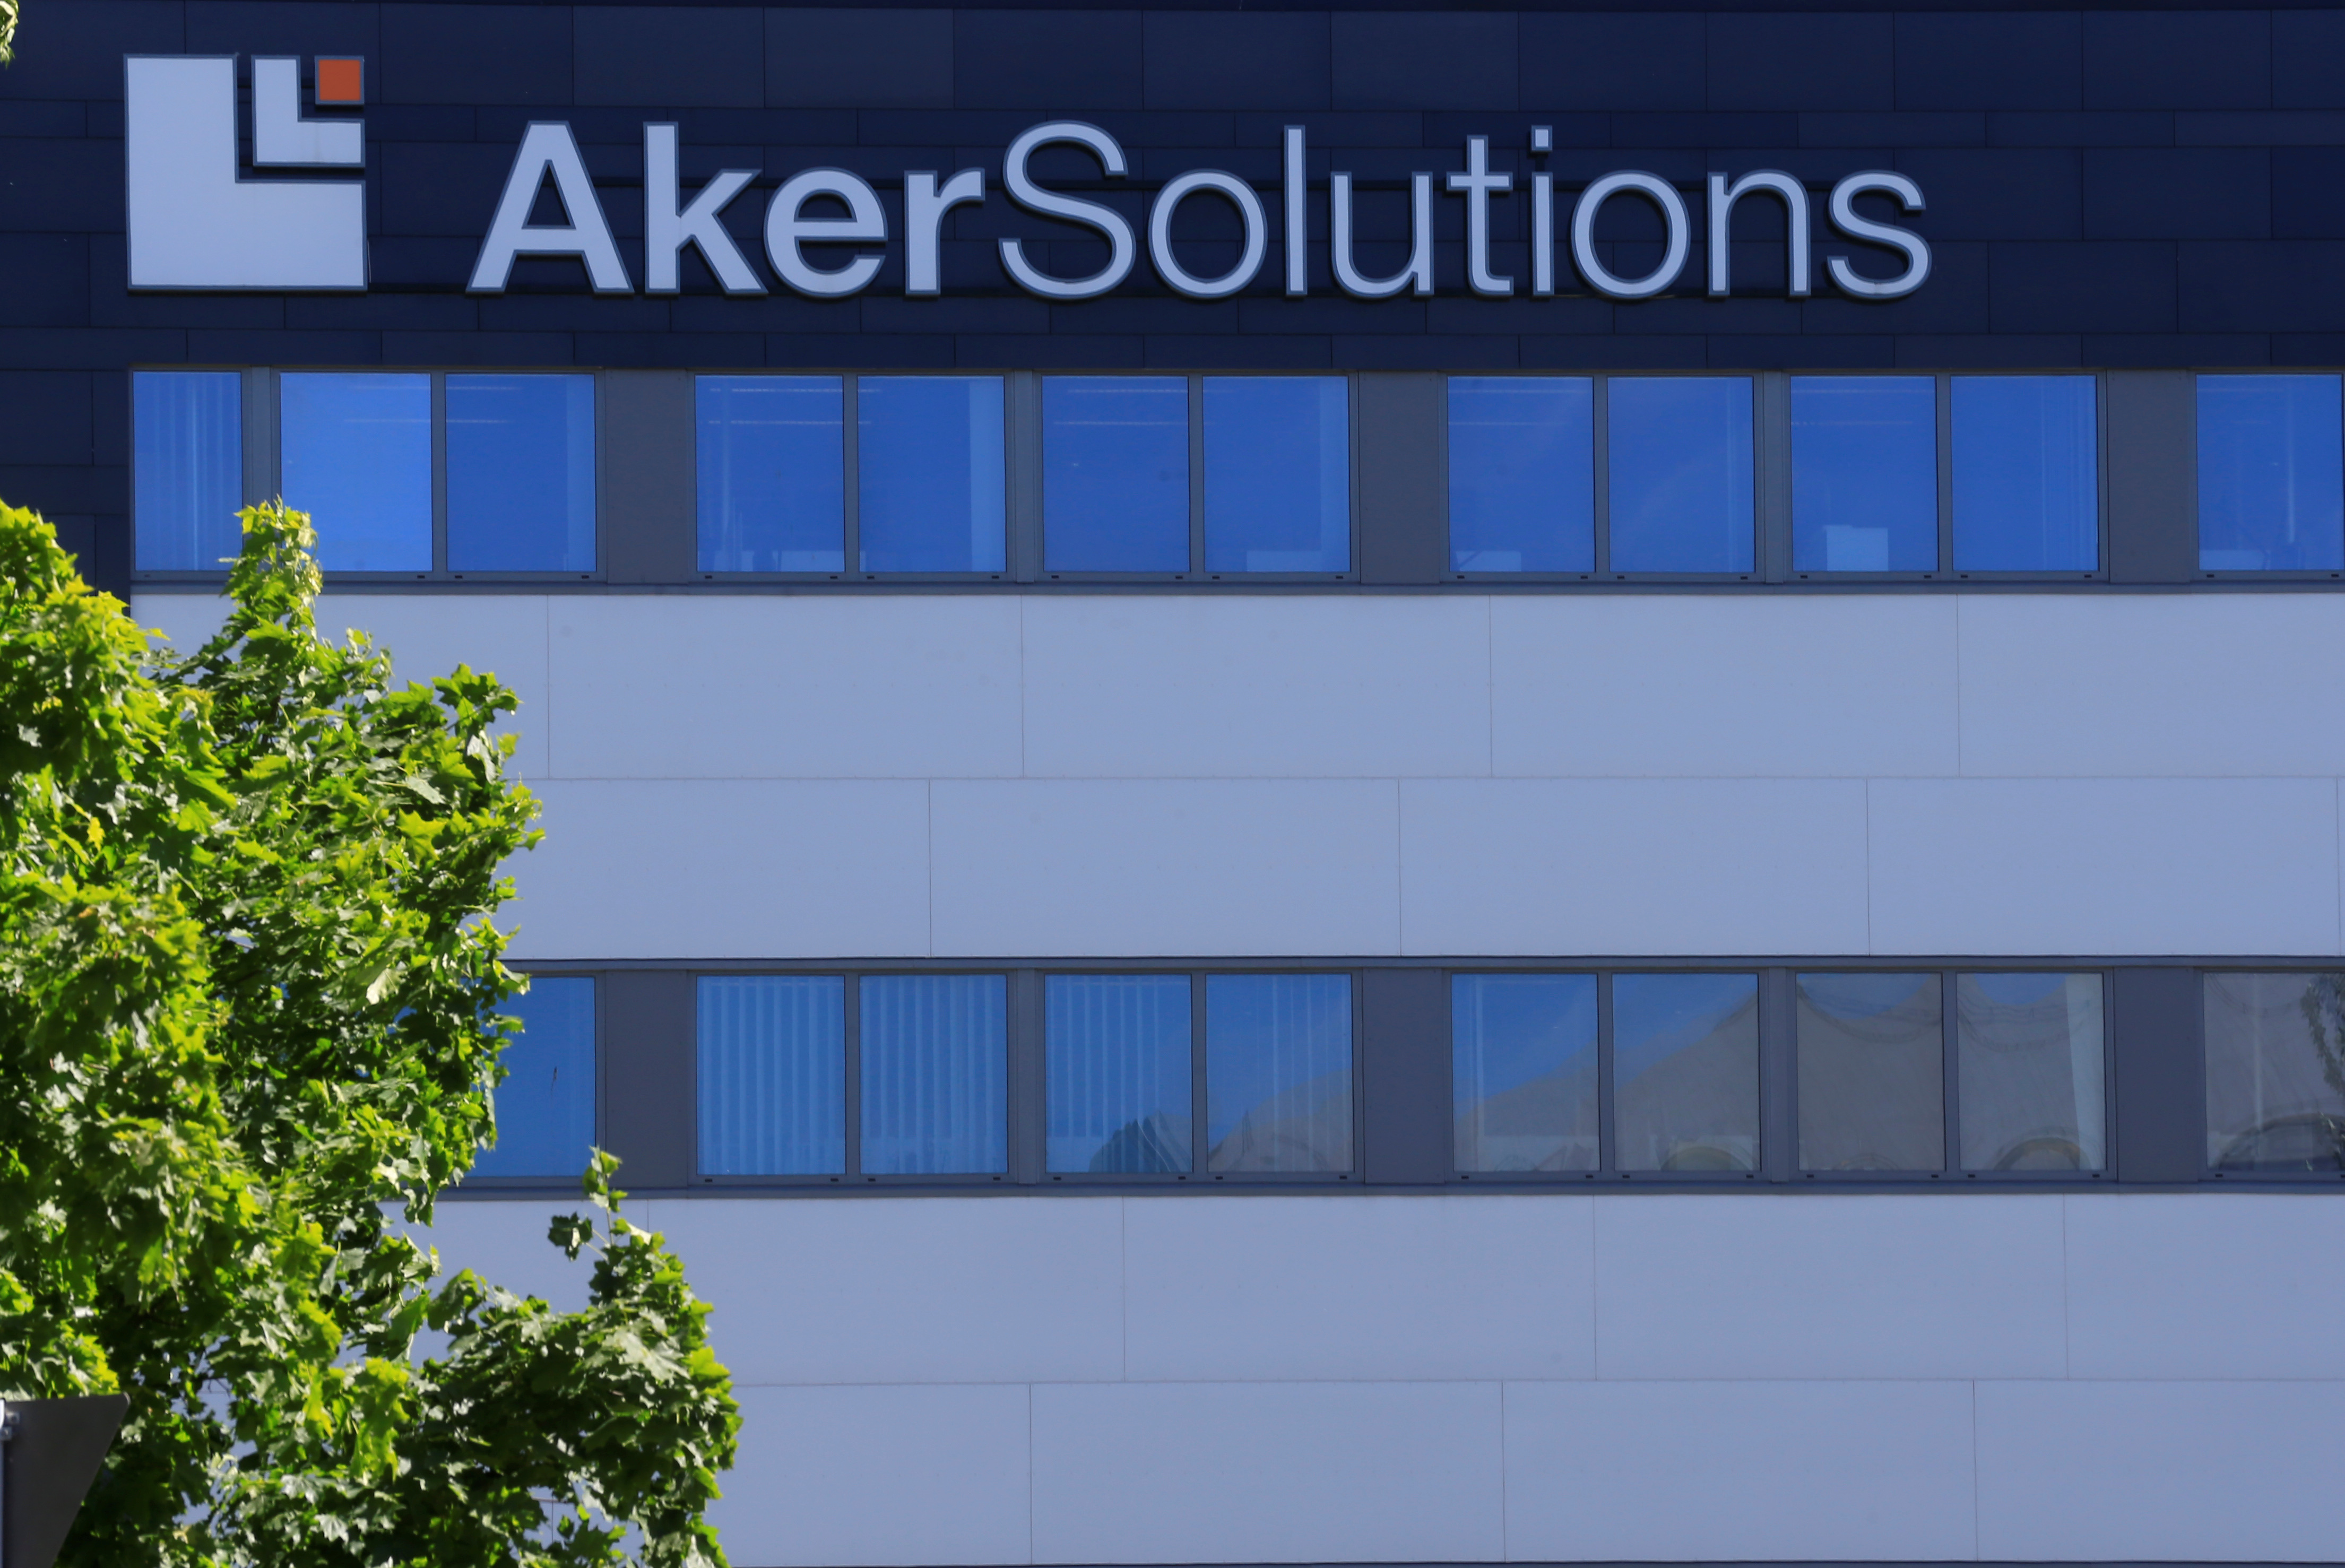 Aker Solutions oil service company's logo is seen at their headquarters in Fornebu, Norway, June 1, 2017. REUTERS/Ints Kalnins